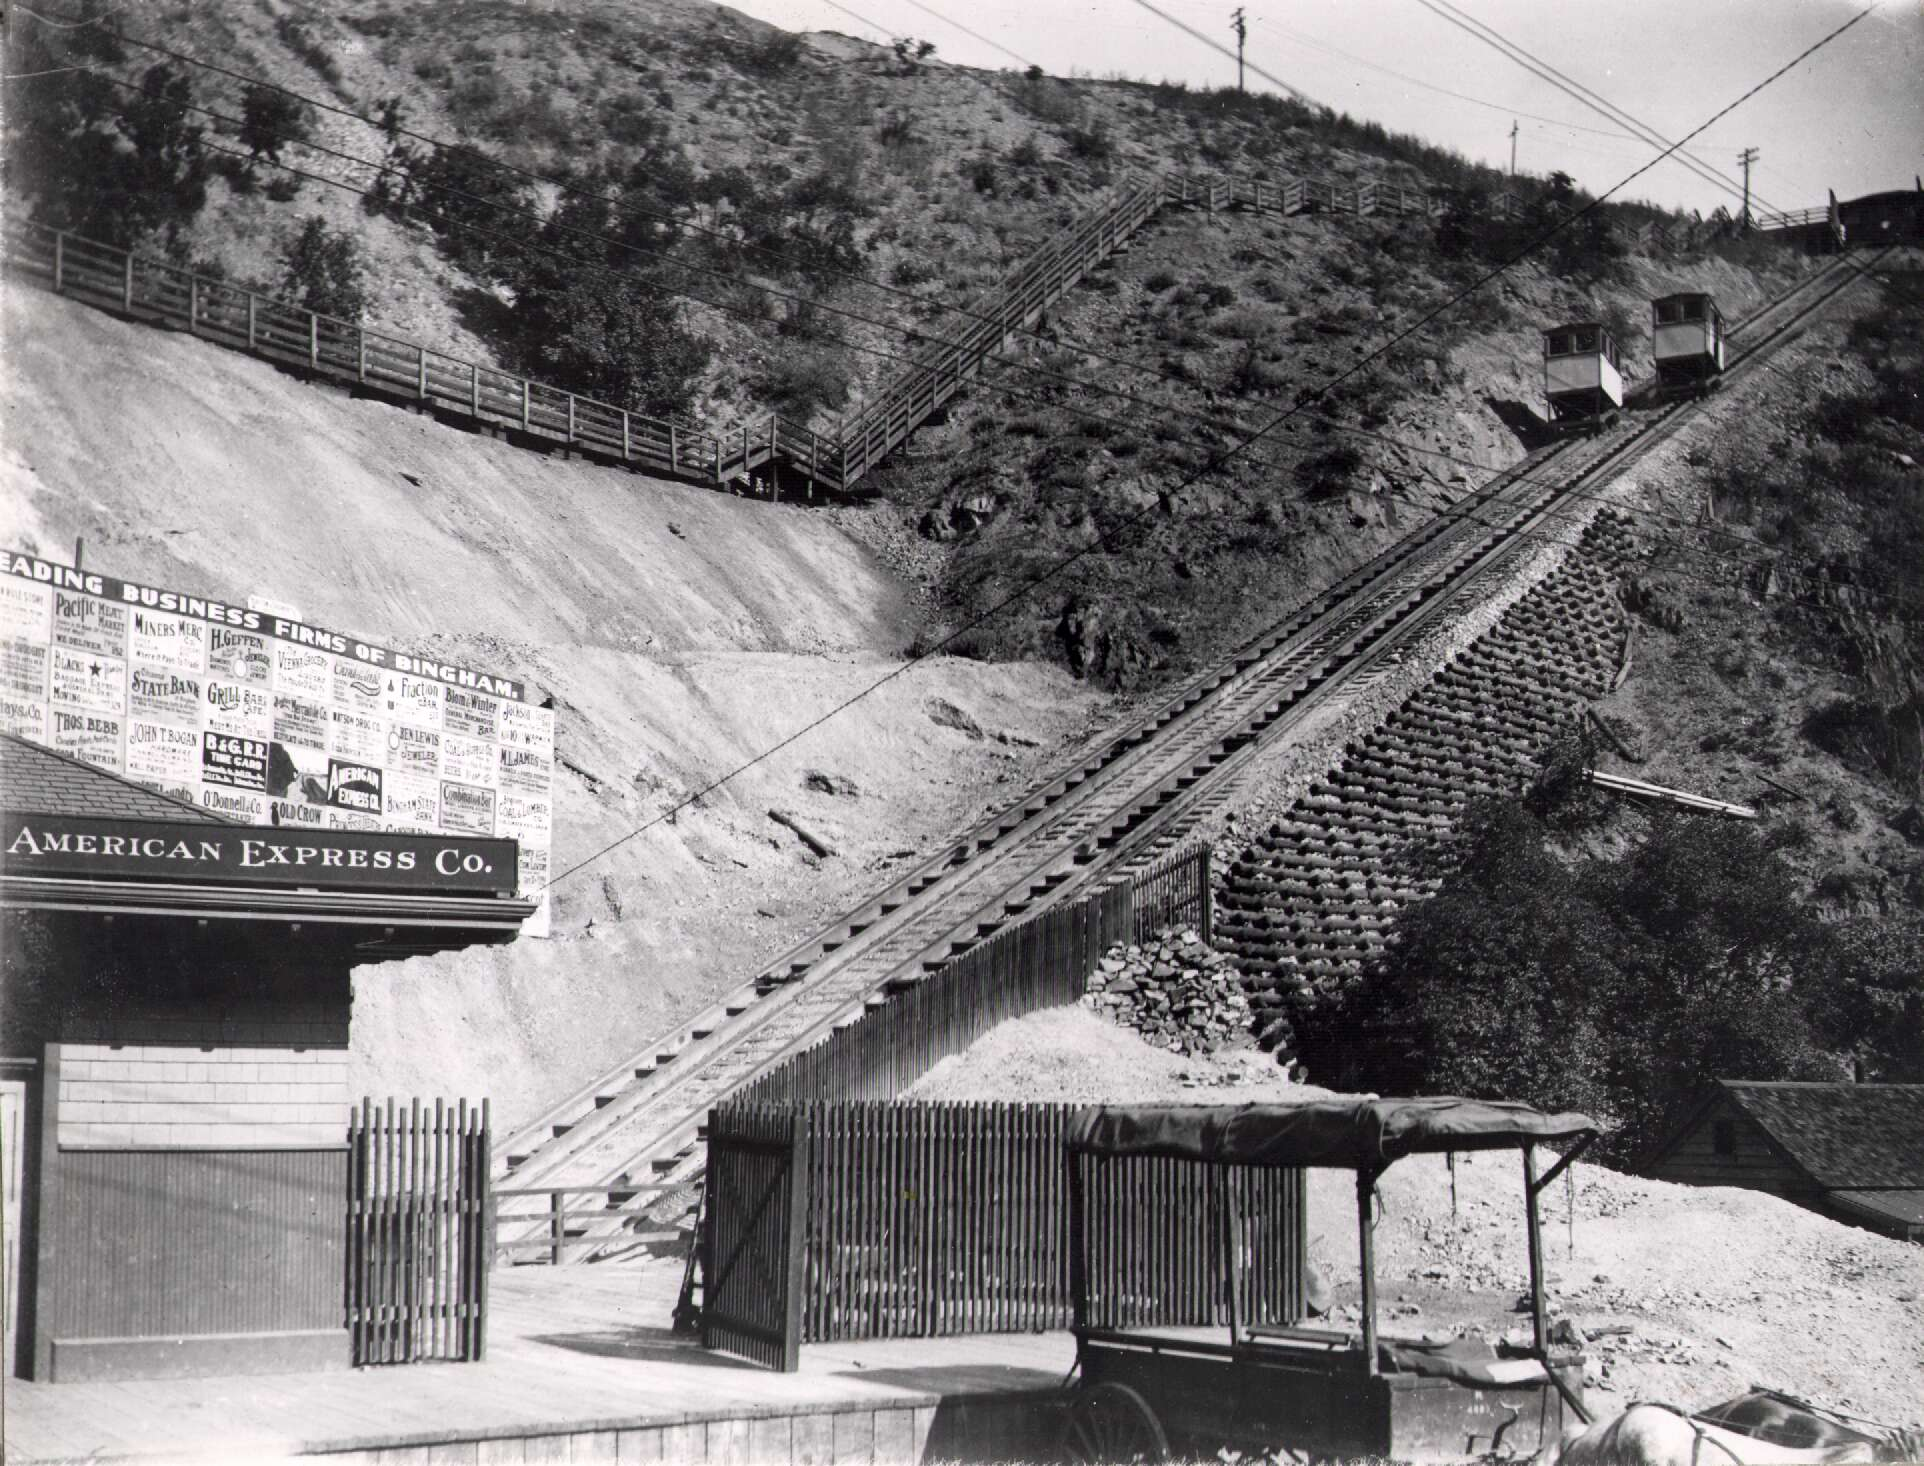 Kennecott Copper Mine - Bingham Canyon Incline (1909-1970)